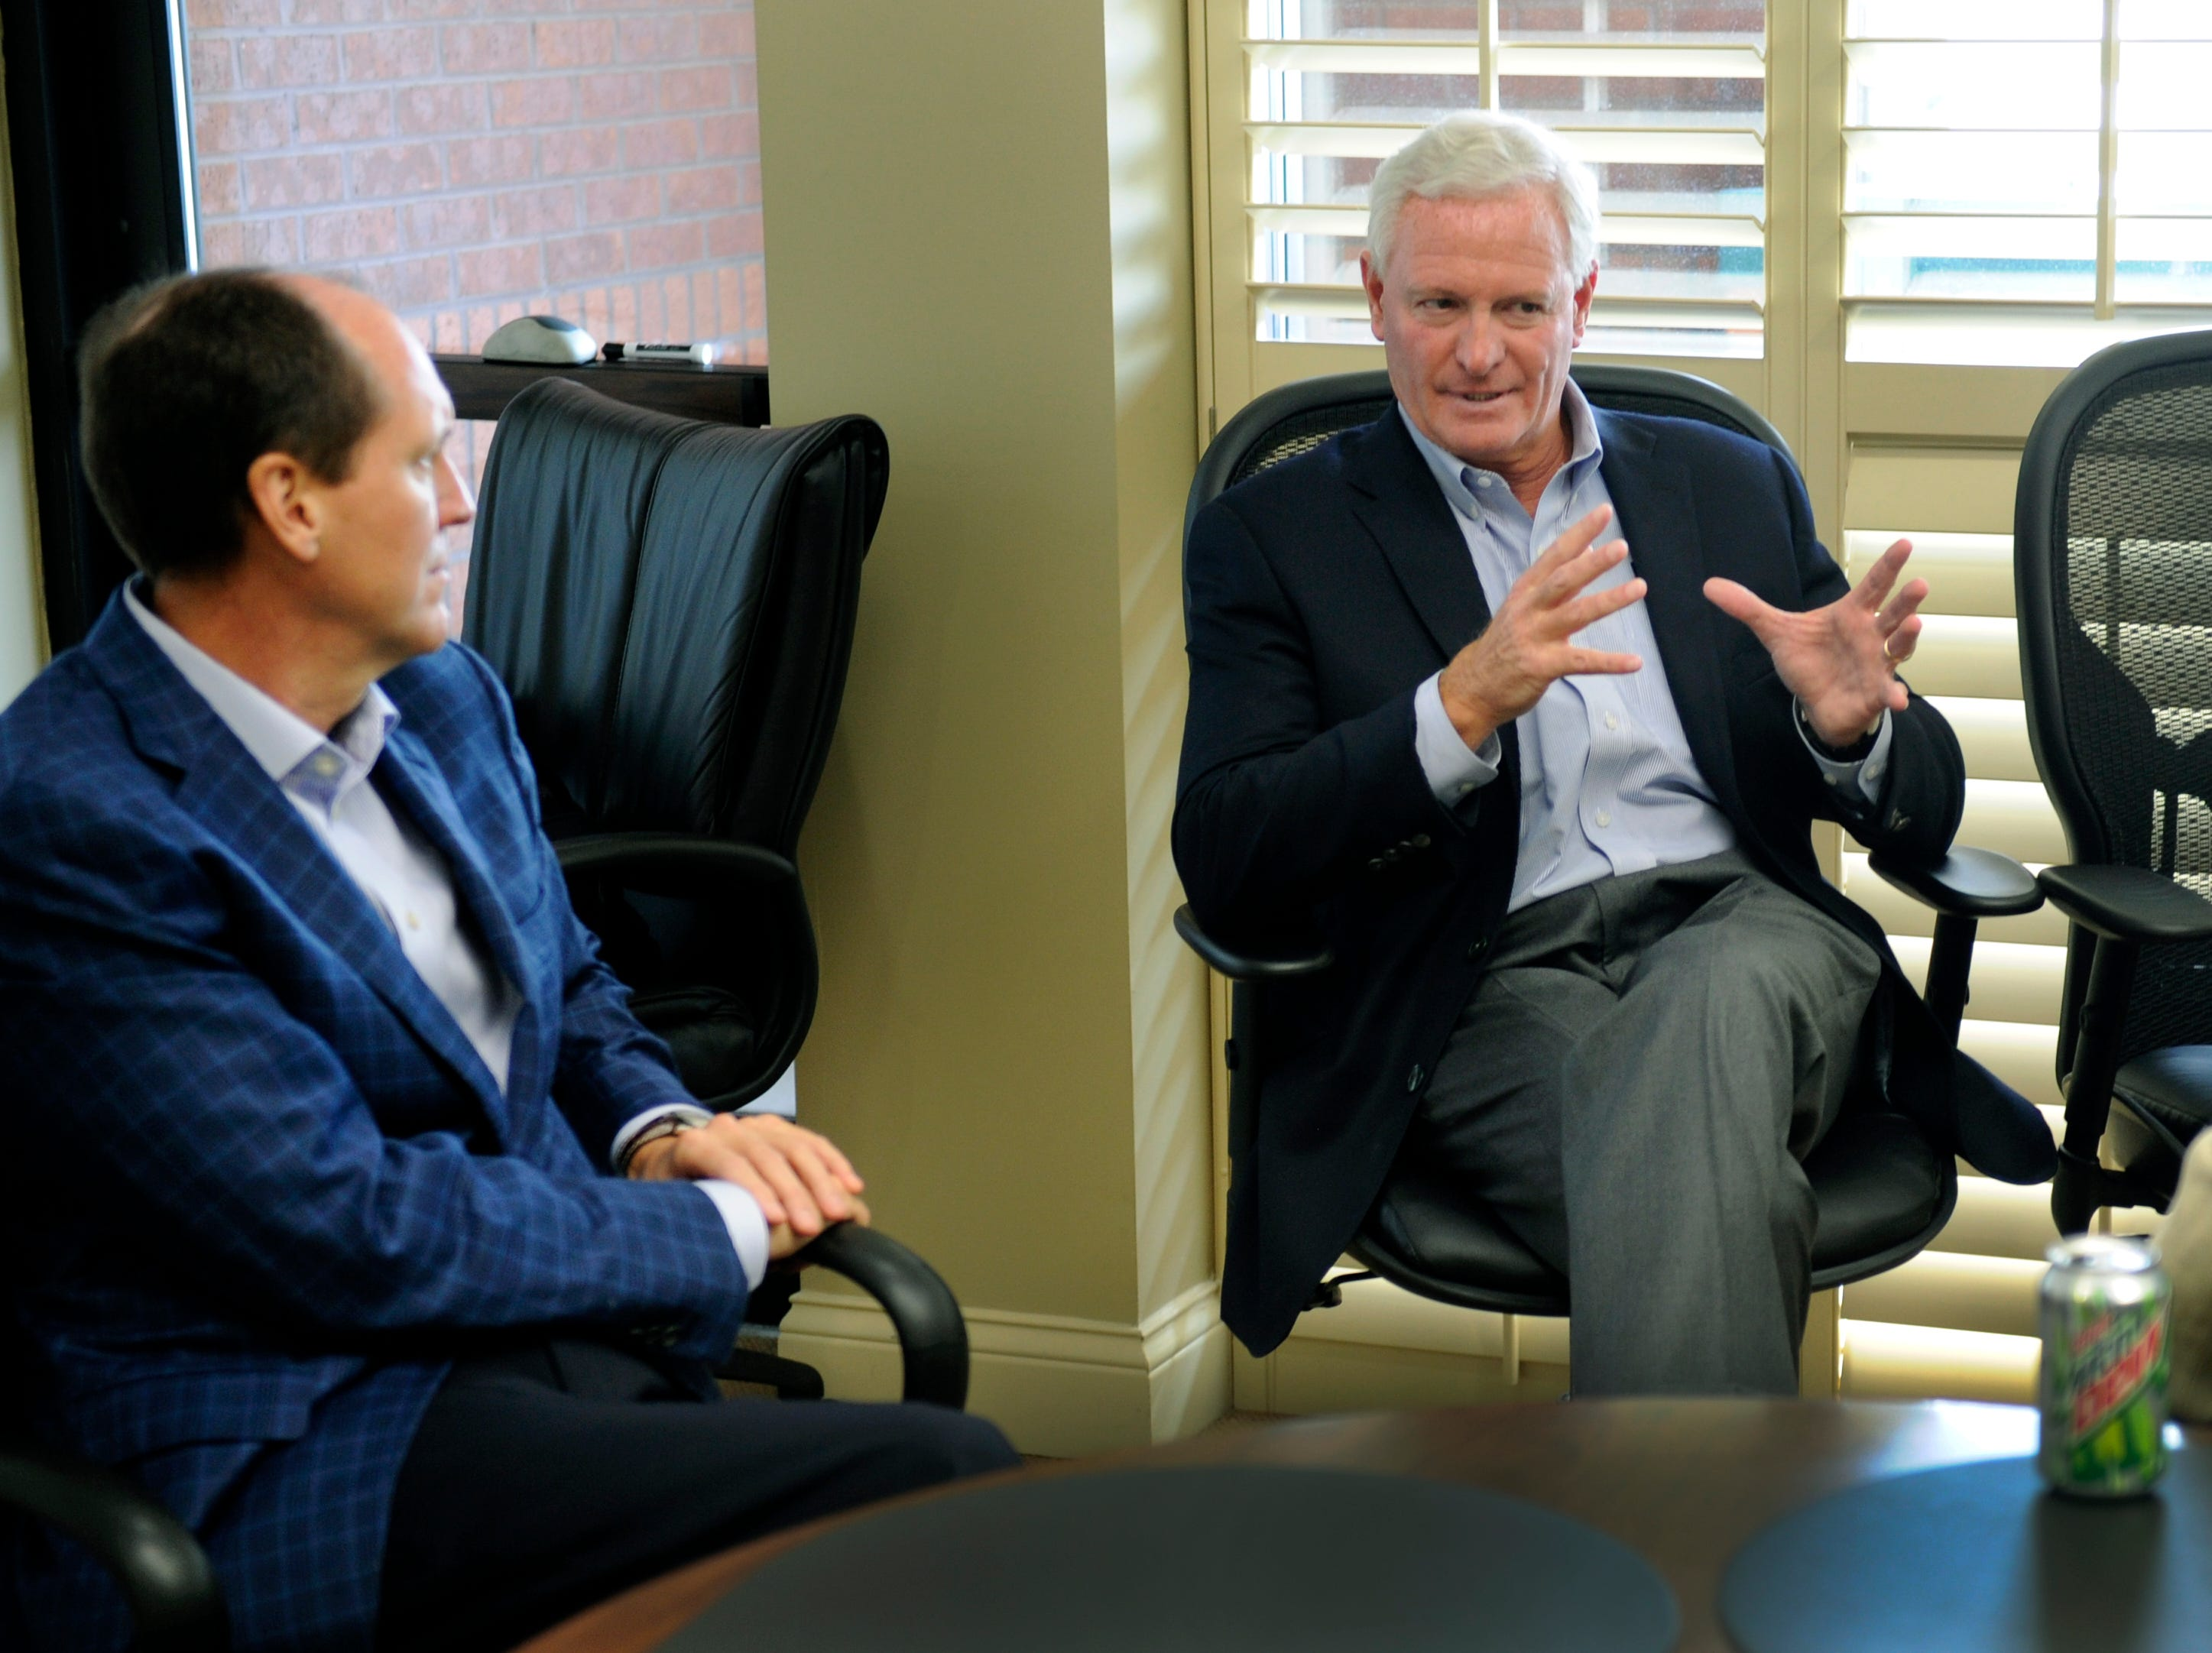 Outgoing Pilot CEO Jimmy Haslam, center, talks to his sucessor, John Compton and his wife, Cindy, Thursday, Sep. 13, 2012 about schools and churches in the area.